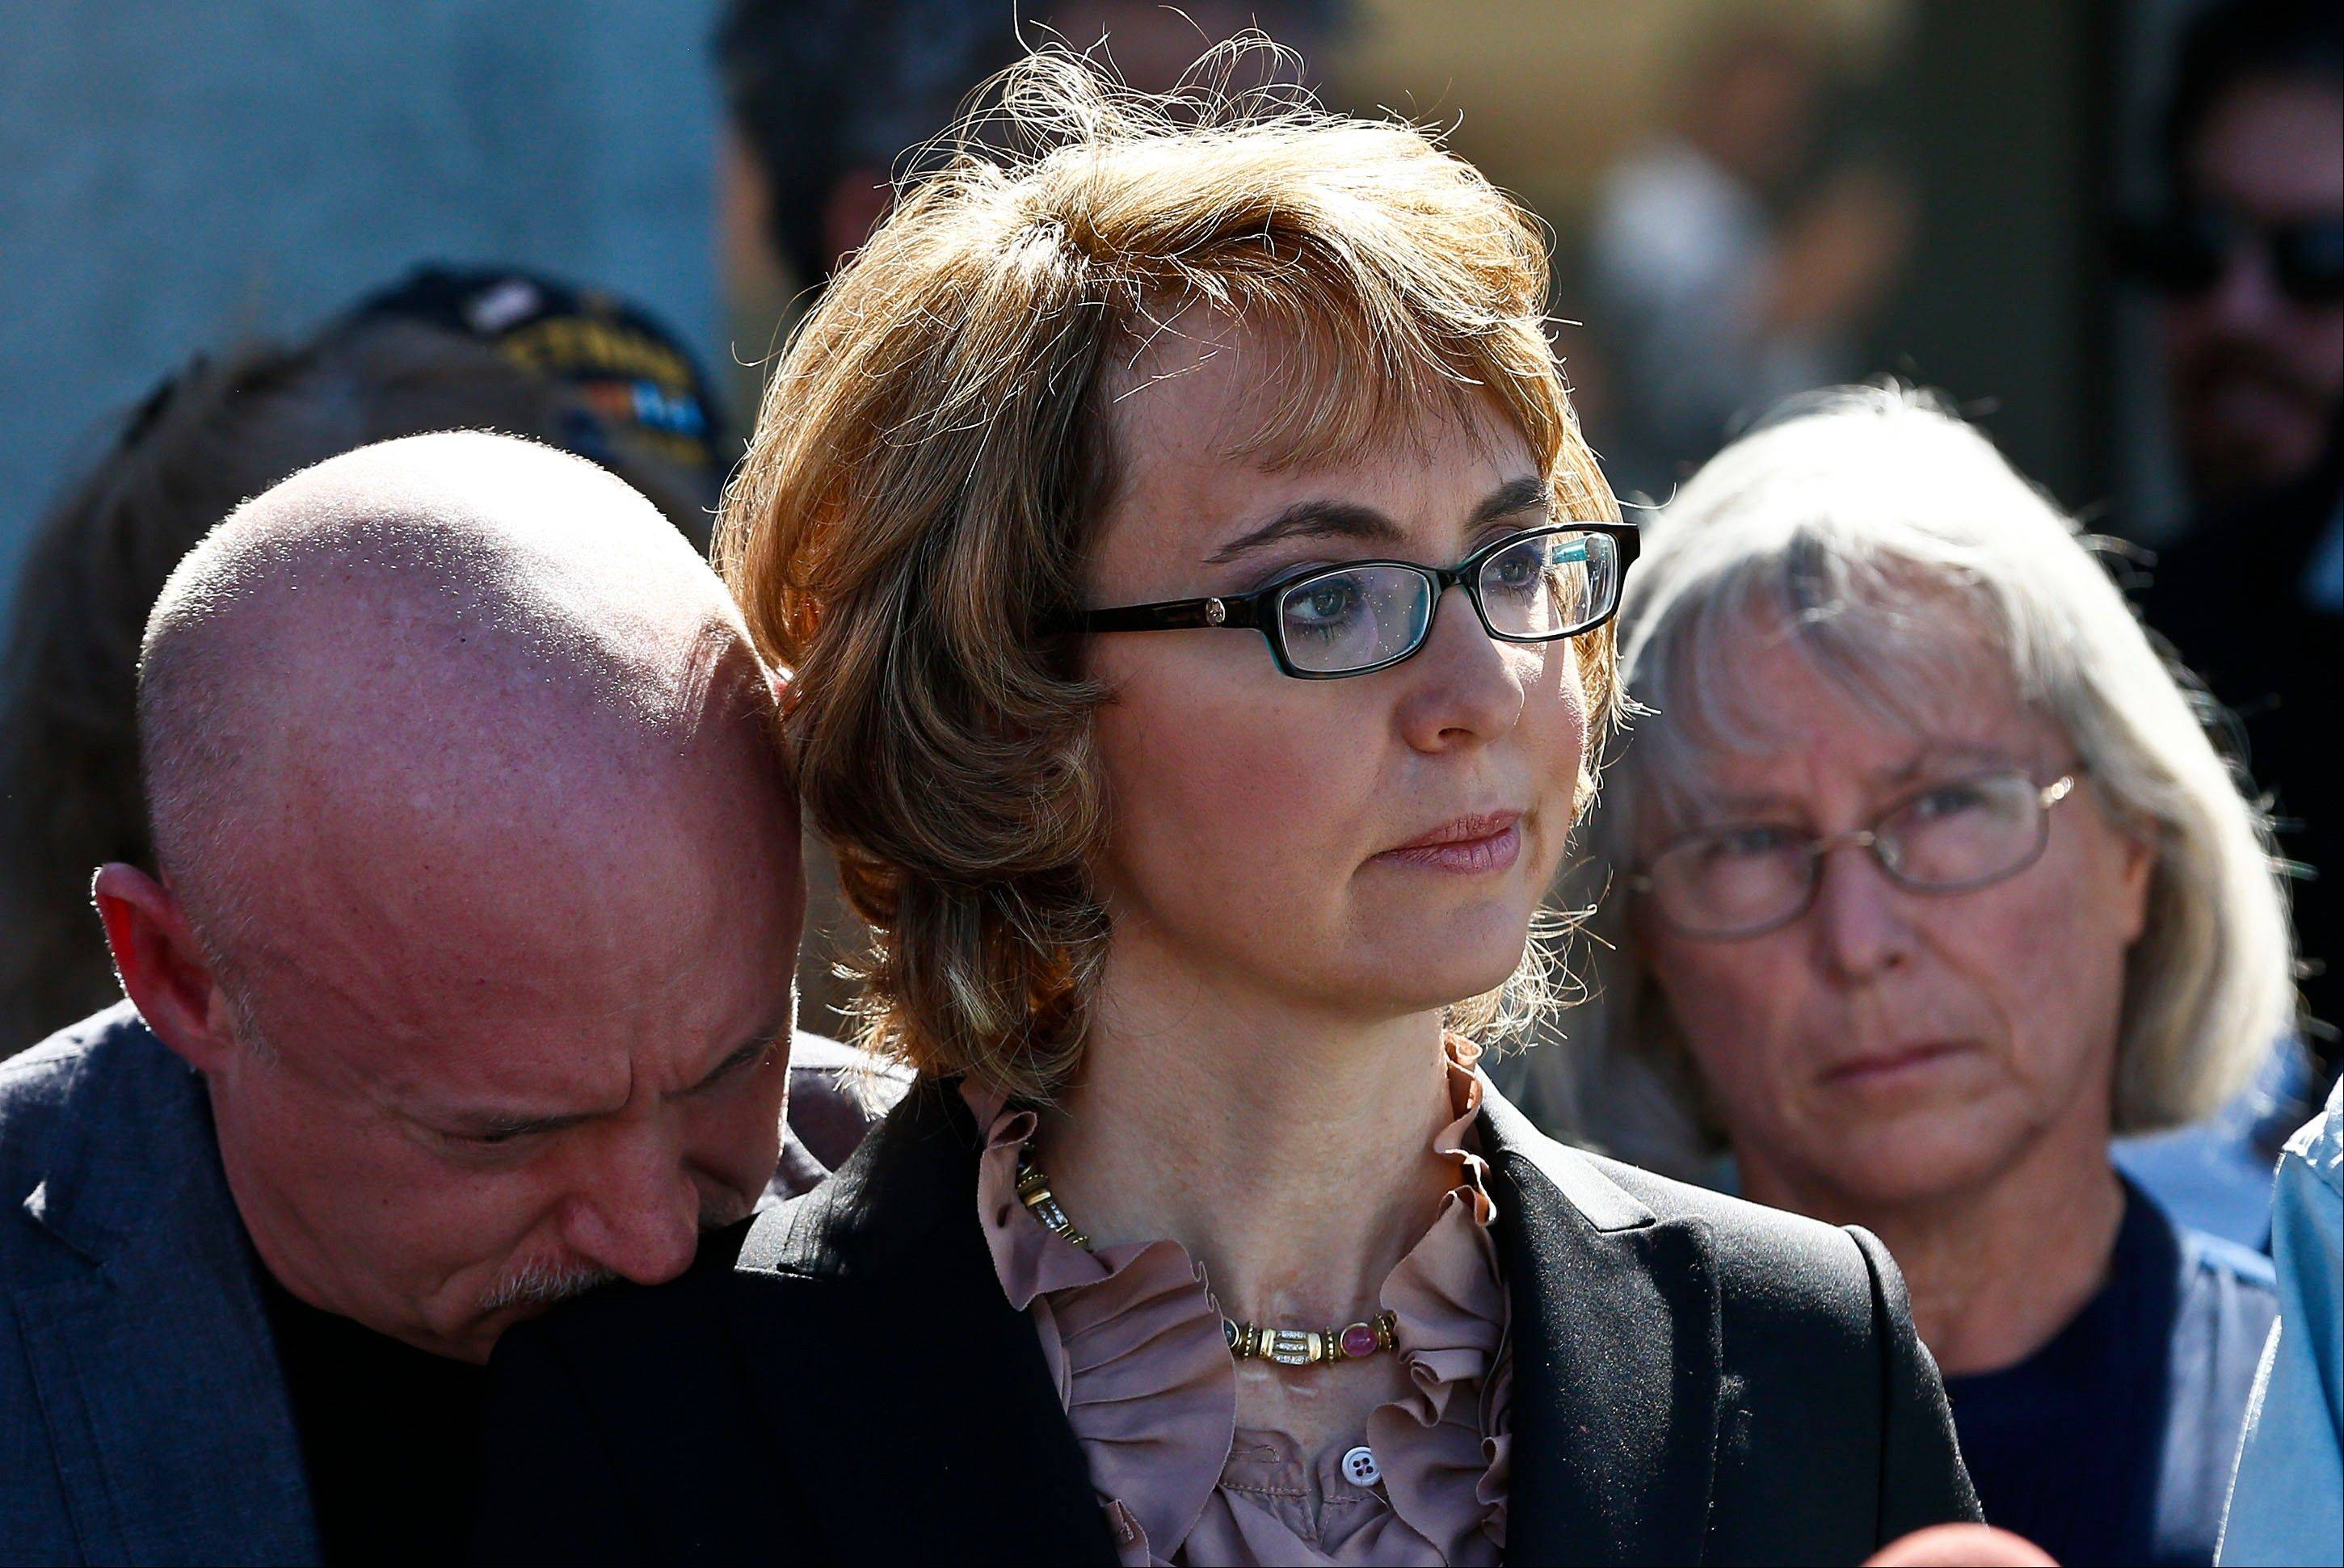 Former Rep. Gabrielle Giffords, center, is joined by her husband Mark Kelly, left, and Emily Nottingham, mother of shooting victim Gabe Zimmerman, listening to a speaker as they returned to the site of a shooting that left her critically wounded to urge key senators to support expanded background checks for gun purchases Wednesday in Tucson, Ariz.